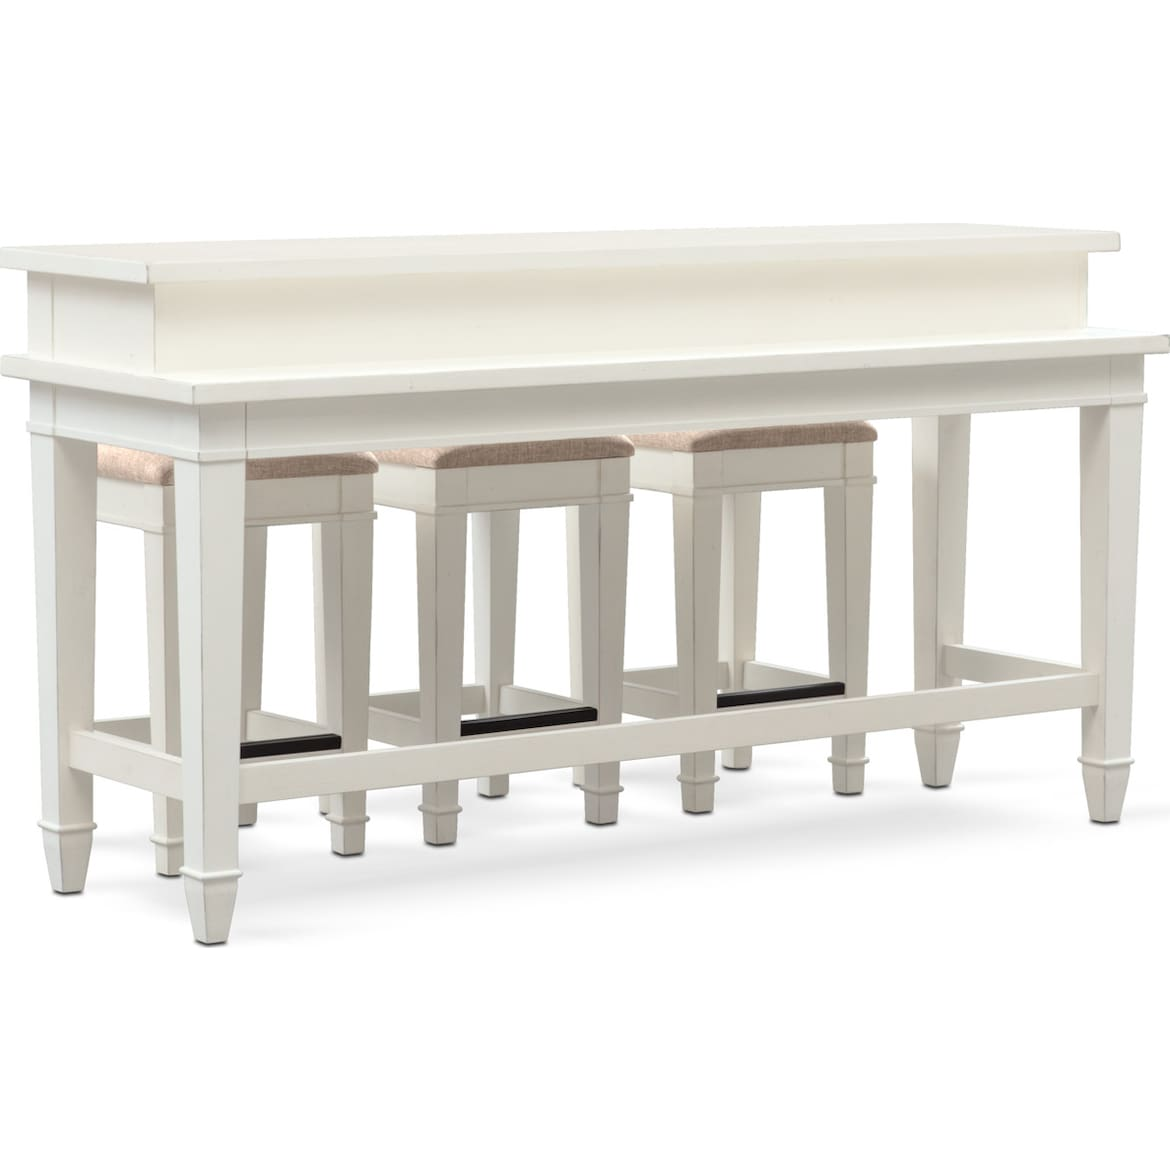 Sofa Table With Stools: Waverly Sofa Table And 3 Stools